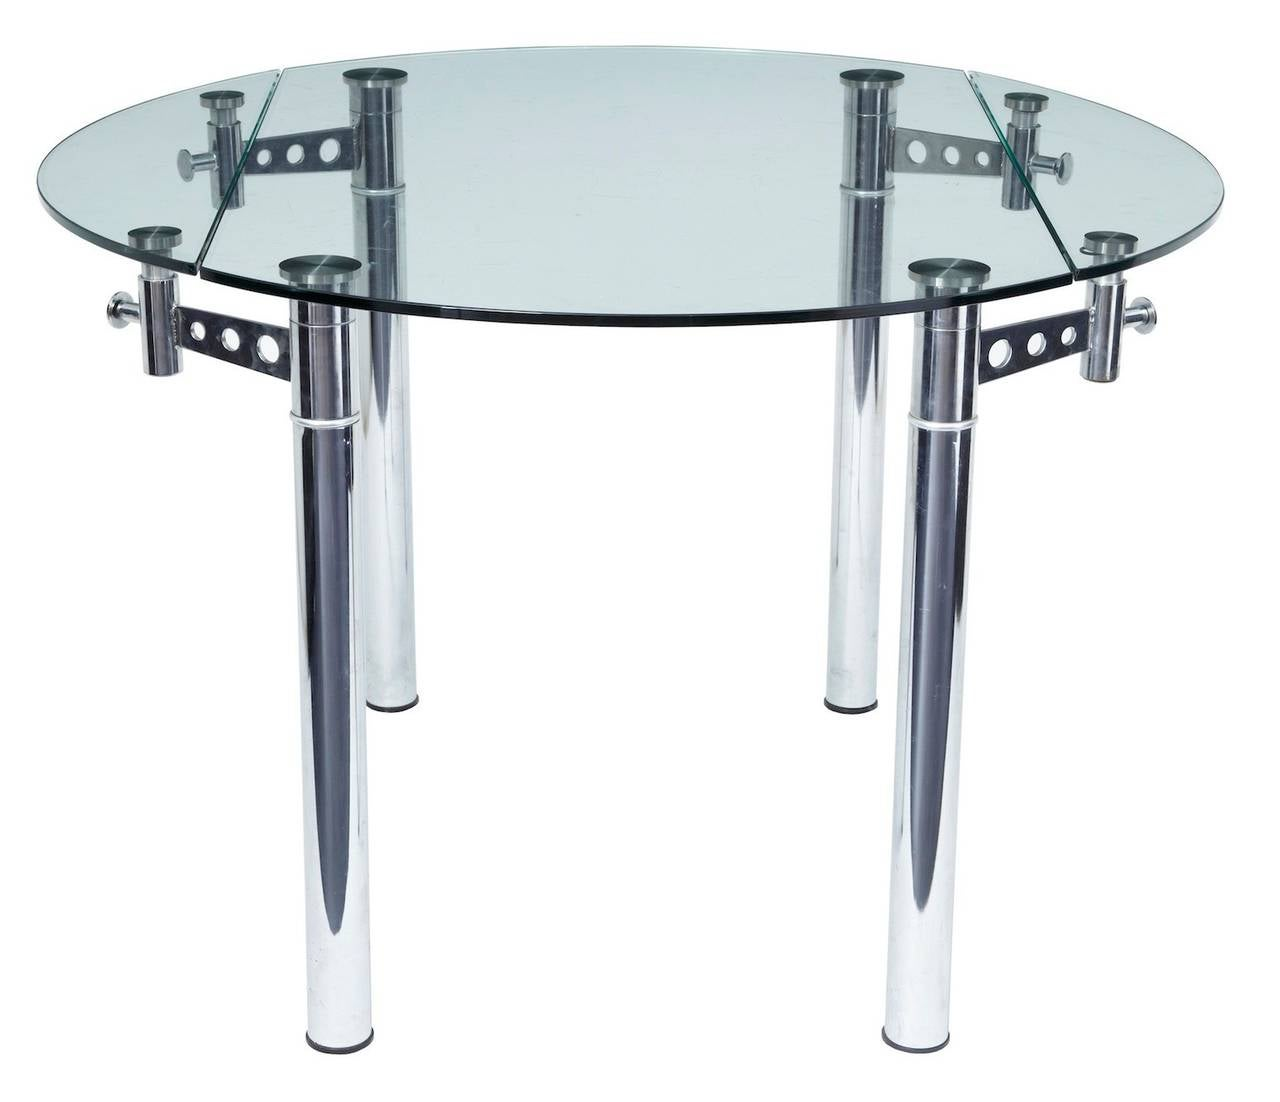 Quality chrome and glass 1970s dining table at 1stdibs for Good quality dining tables